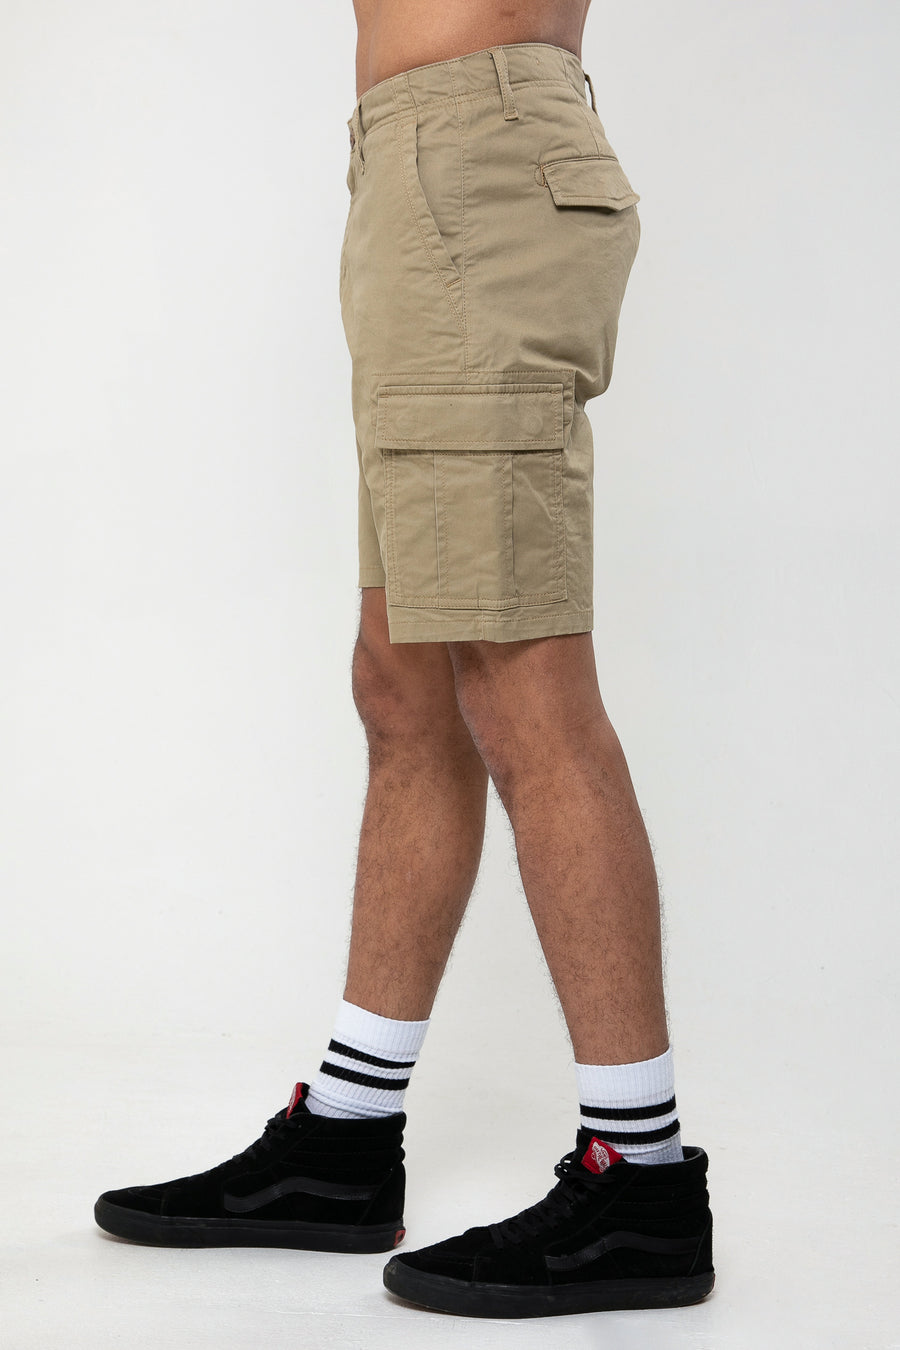 Rookie Cargo Short In Stone - DML Jeans